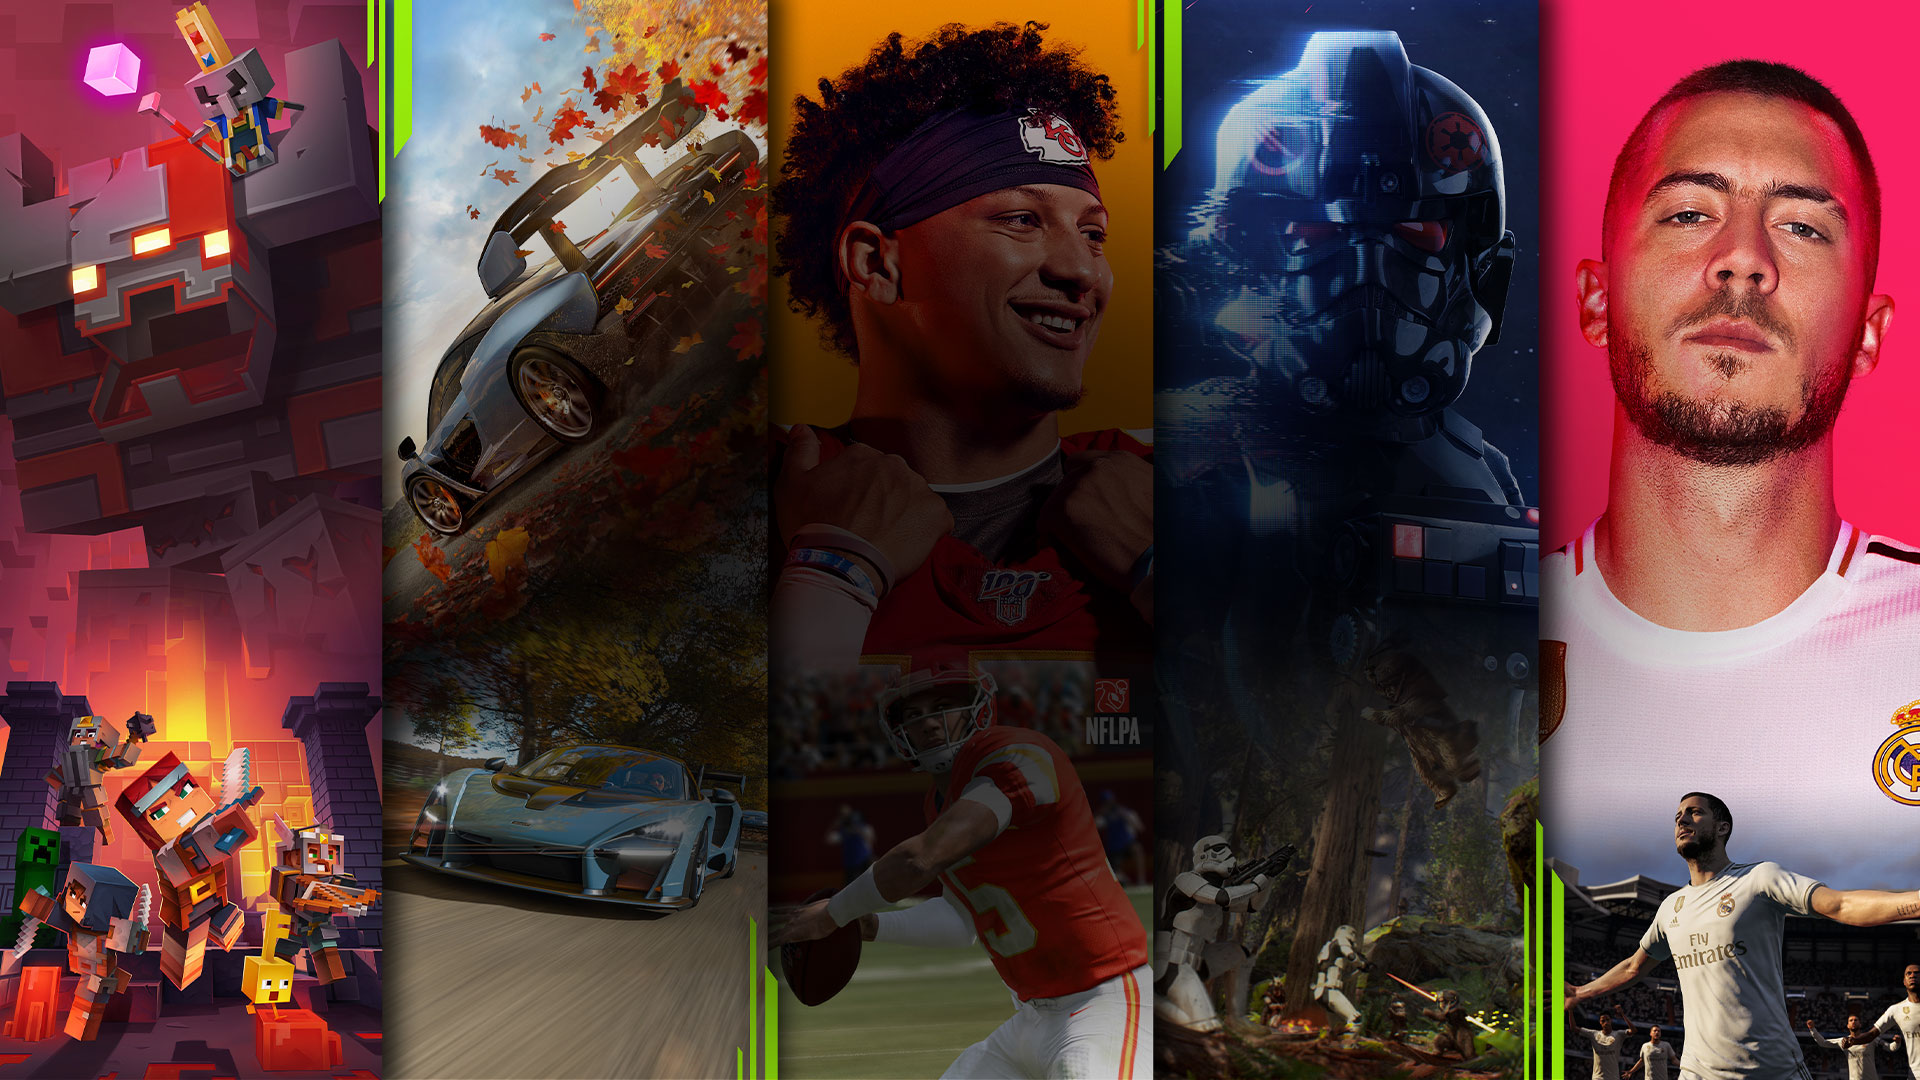 Xbox Game Pass, mosaico de personales de EA Play y Xbox Game Pass